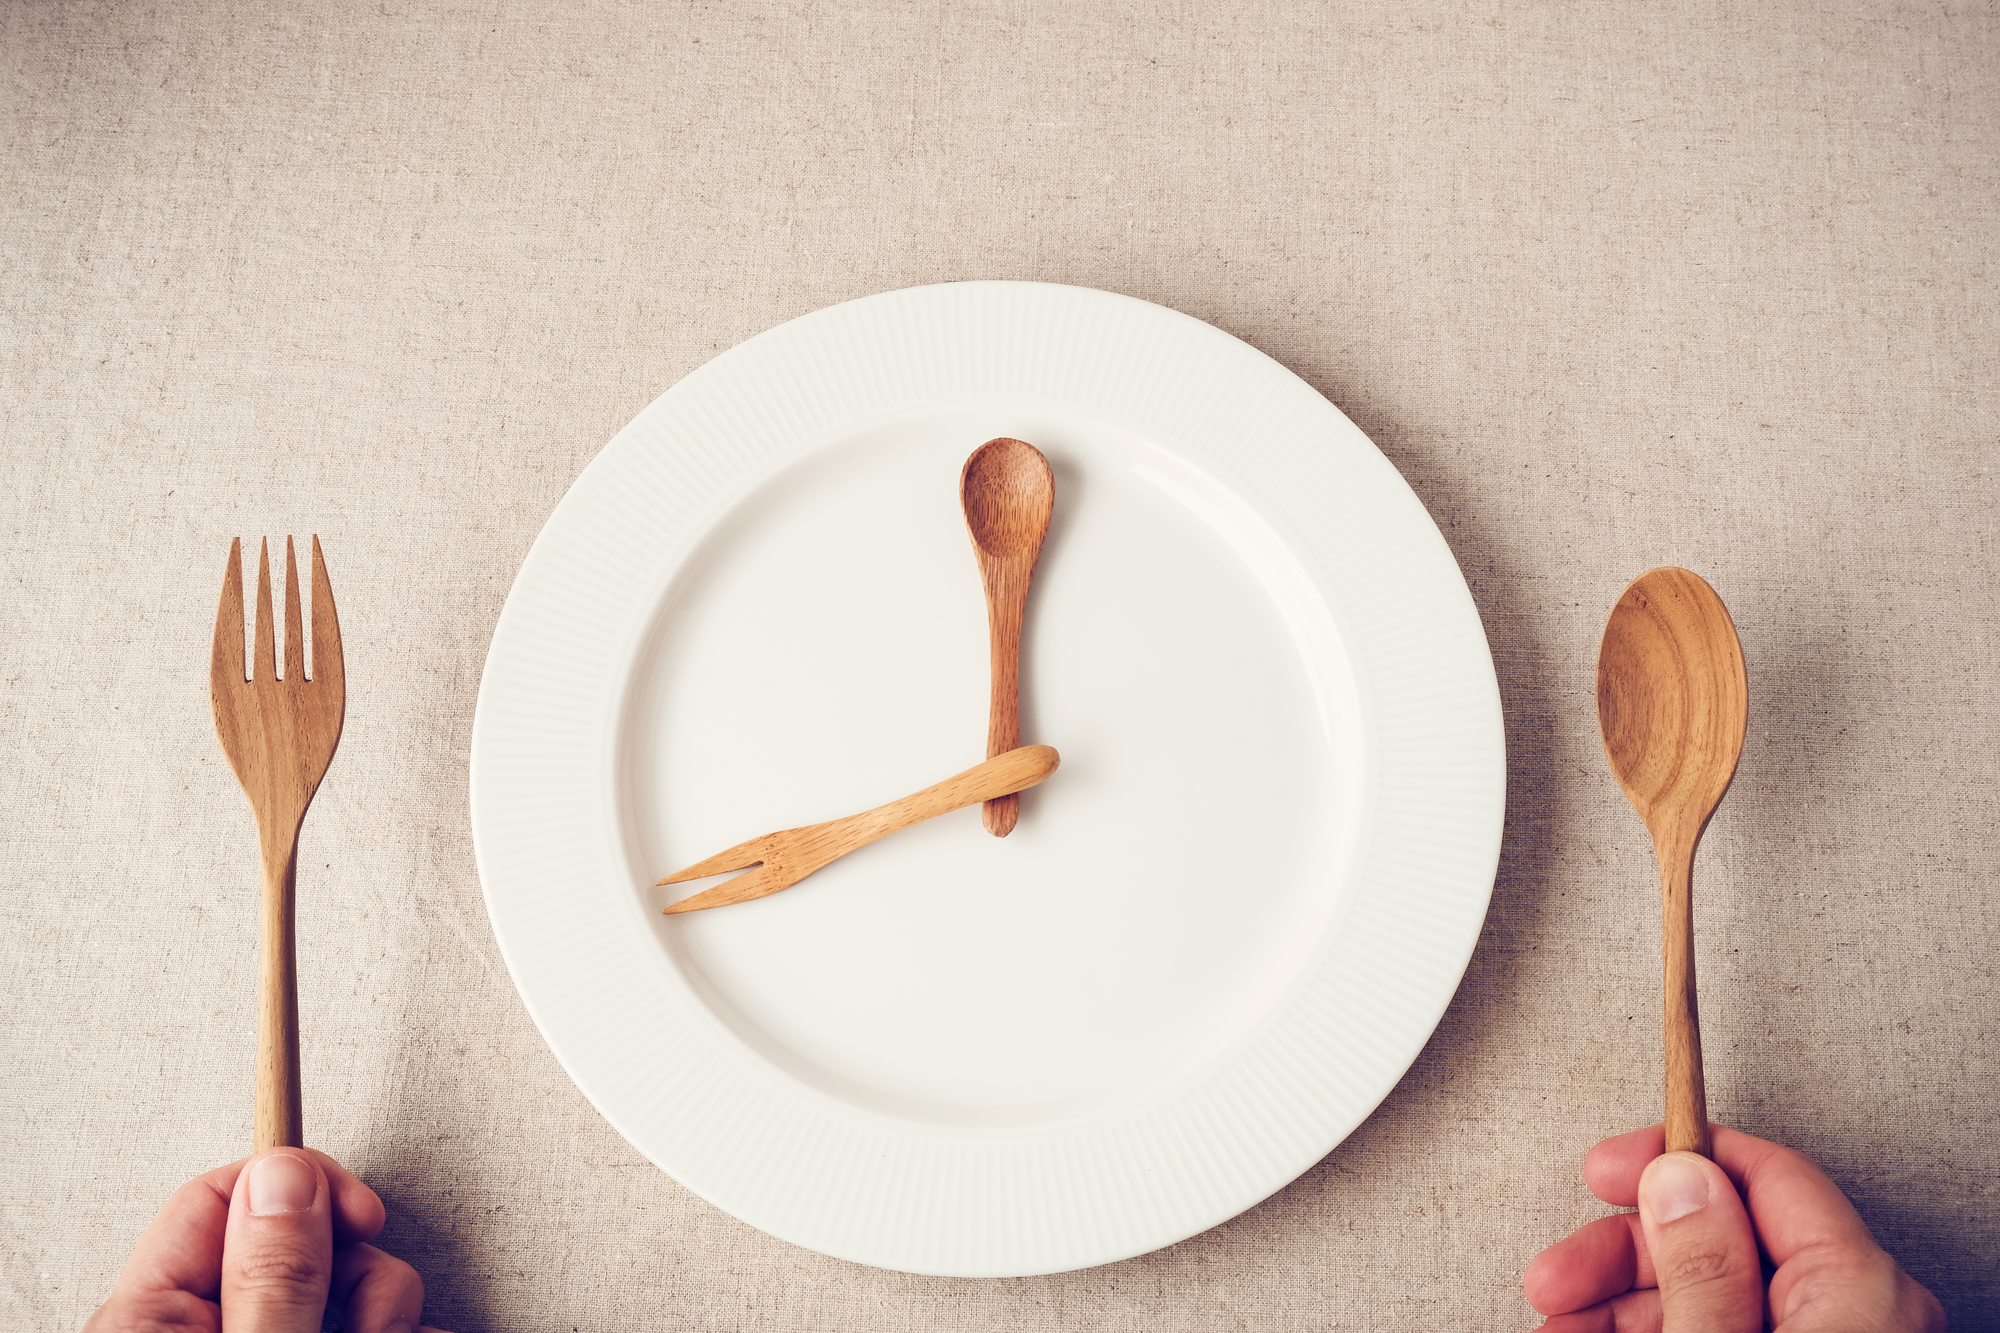 New studies shine light on long-term effects of intermittent fasting